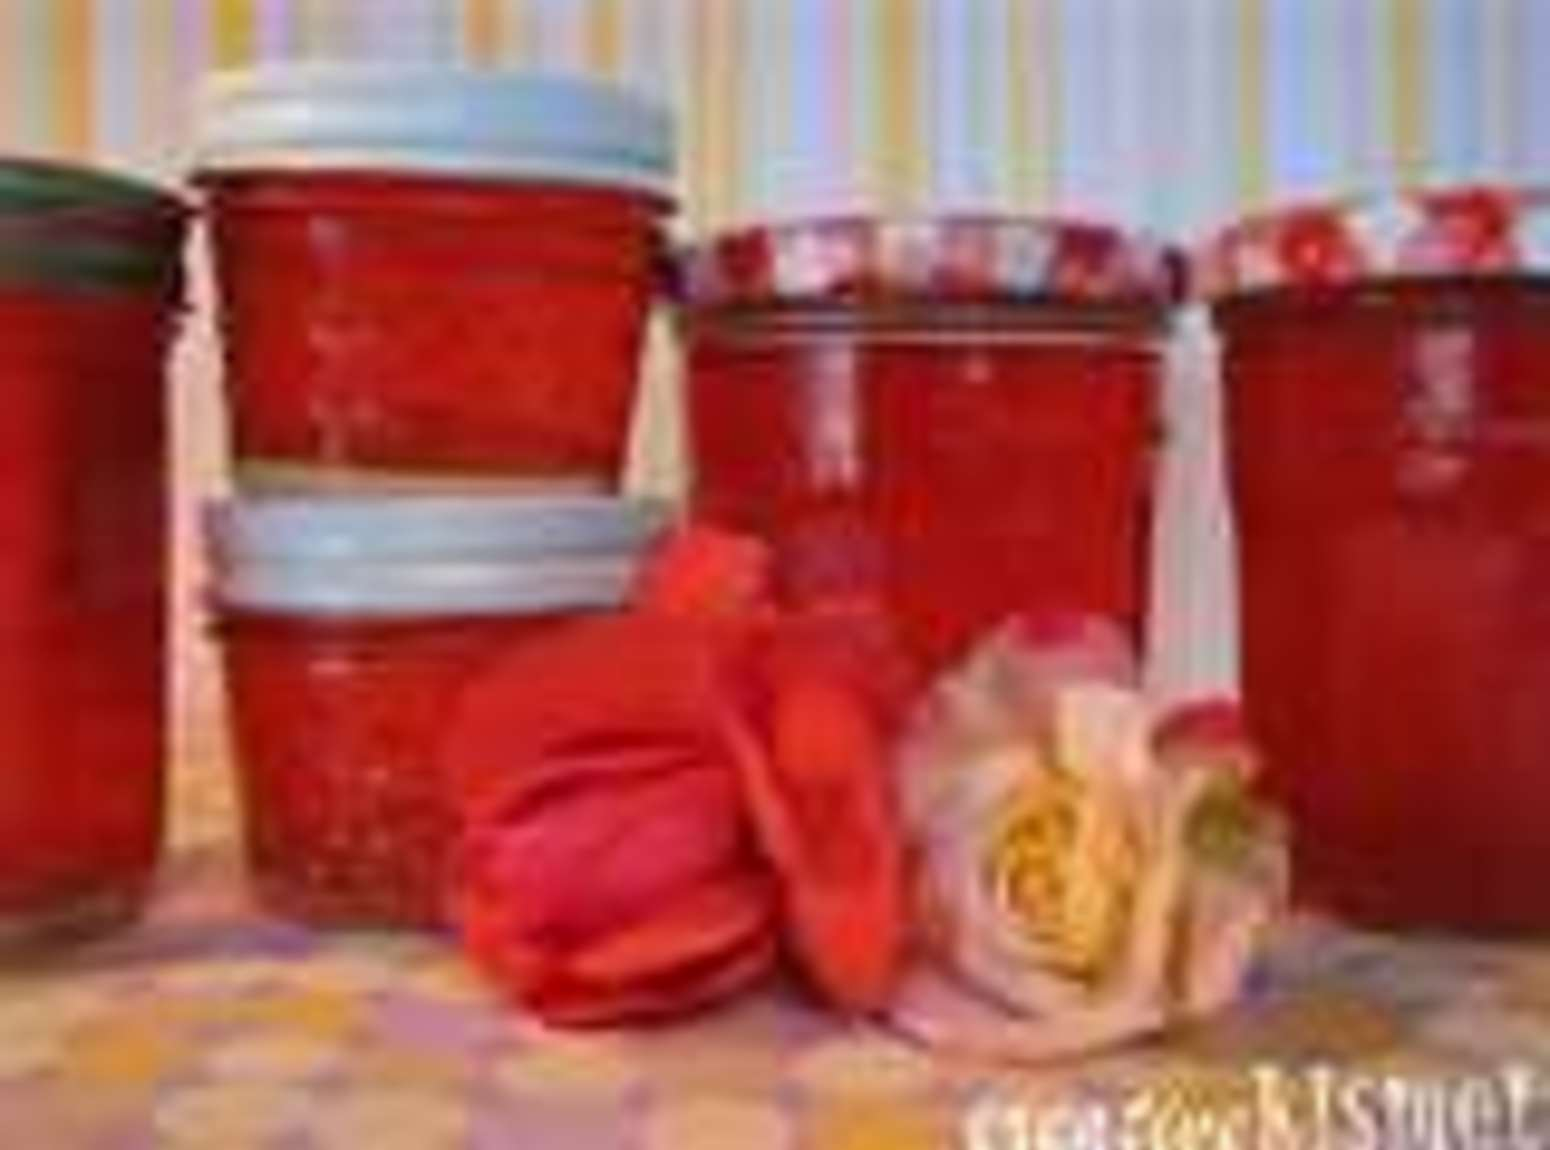 Rose Petal, Chamomile, and Lavendar Jelly Recipe